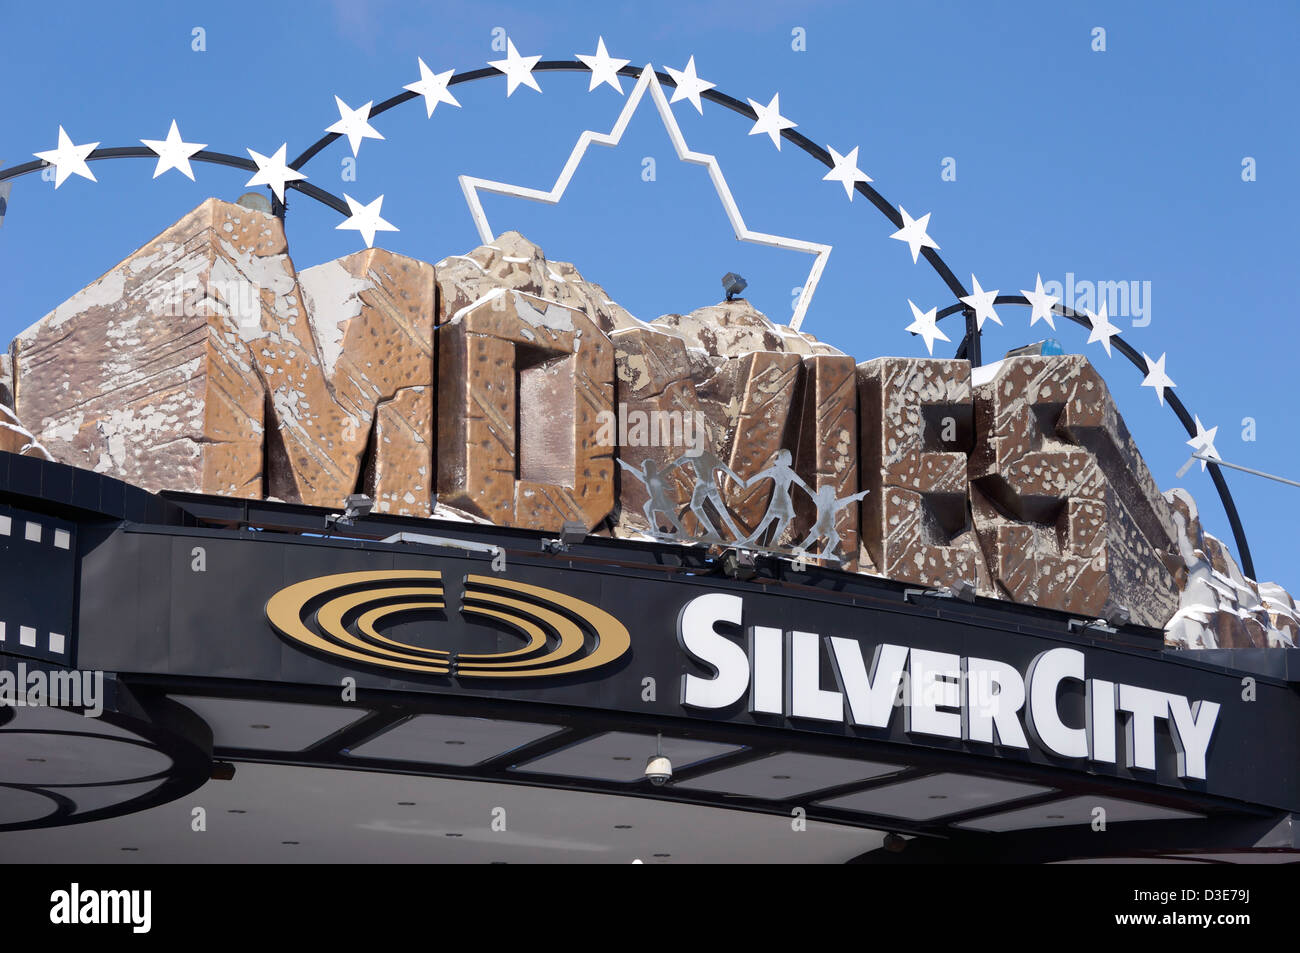 Movies sign, SilverCity Movie Theatre. - Stock Image